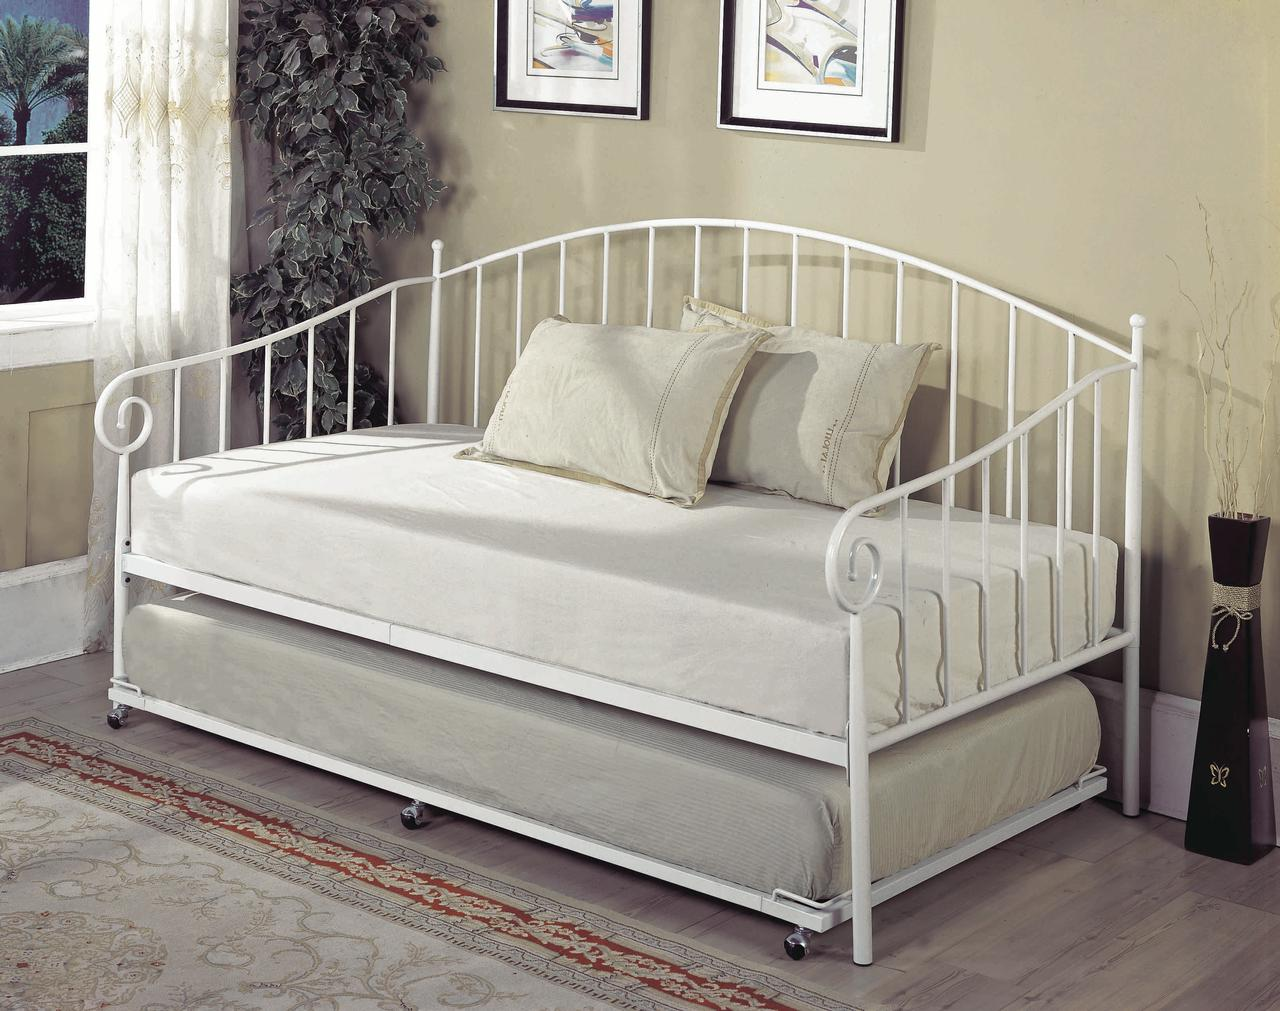 twin size white metal day bed frame with popup high riser trundle headboard